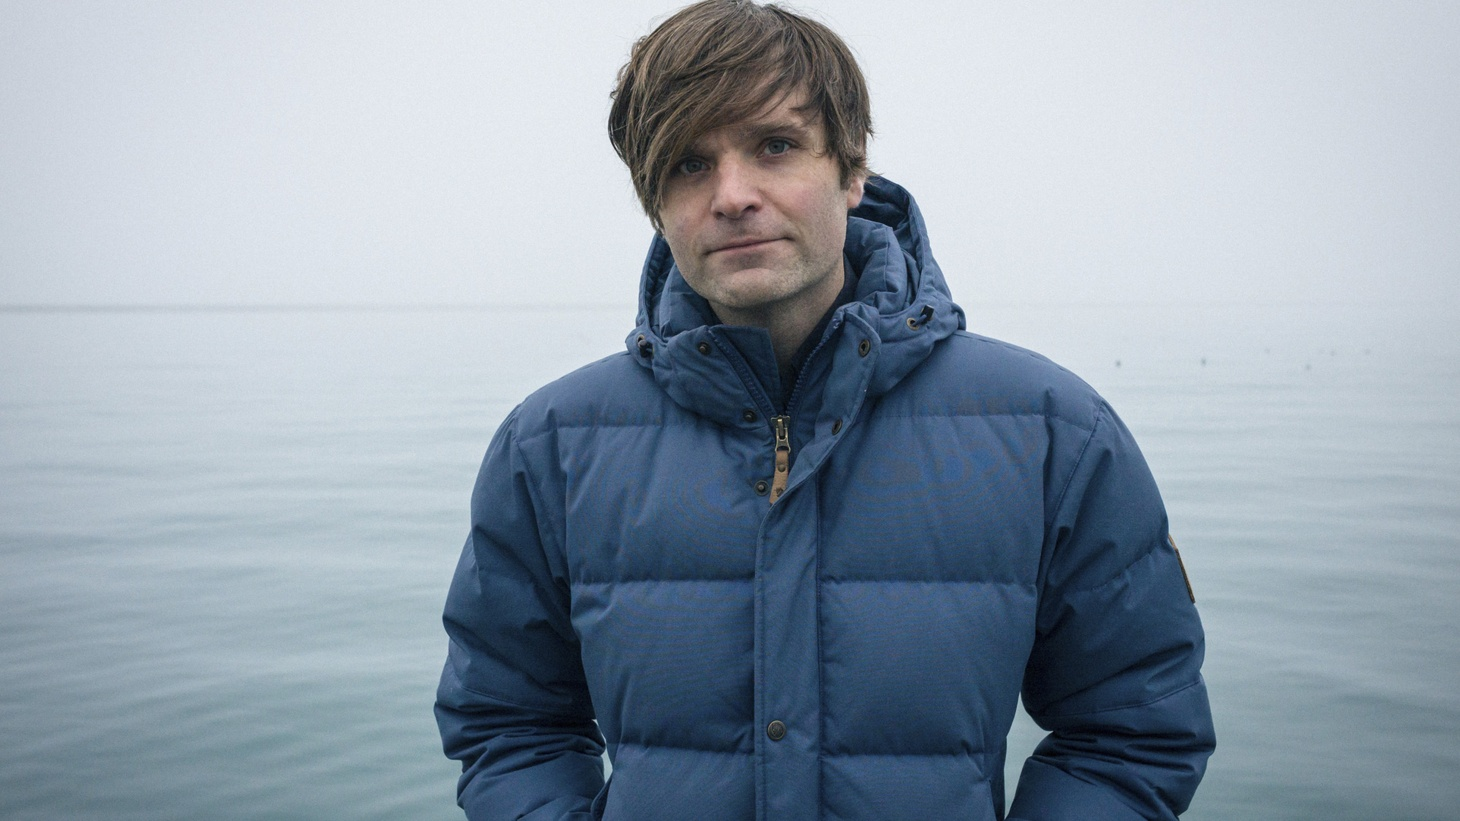 """Death Cab for Cutie frontman Ben Gibbard recreates Teenage Fanclub's 1991 album Bandwagonesque in its entirety. Gibbard says, """"Bandwagonesque is my favorite record from my favorite band of all time. It came along at a pivotal time in my musical life and I've loved it for 25 years."""""""